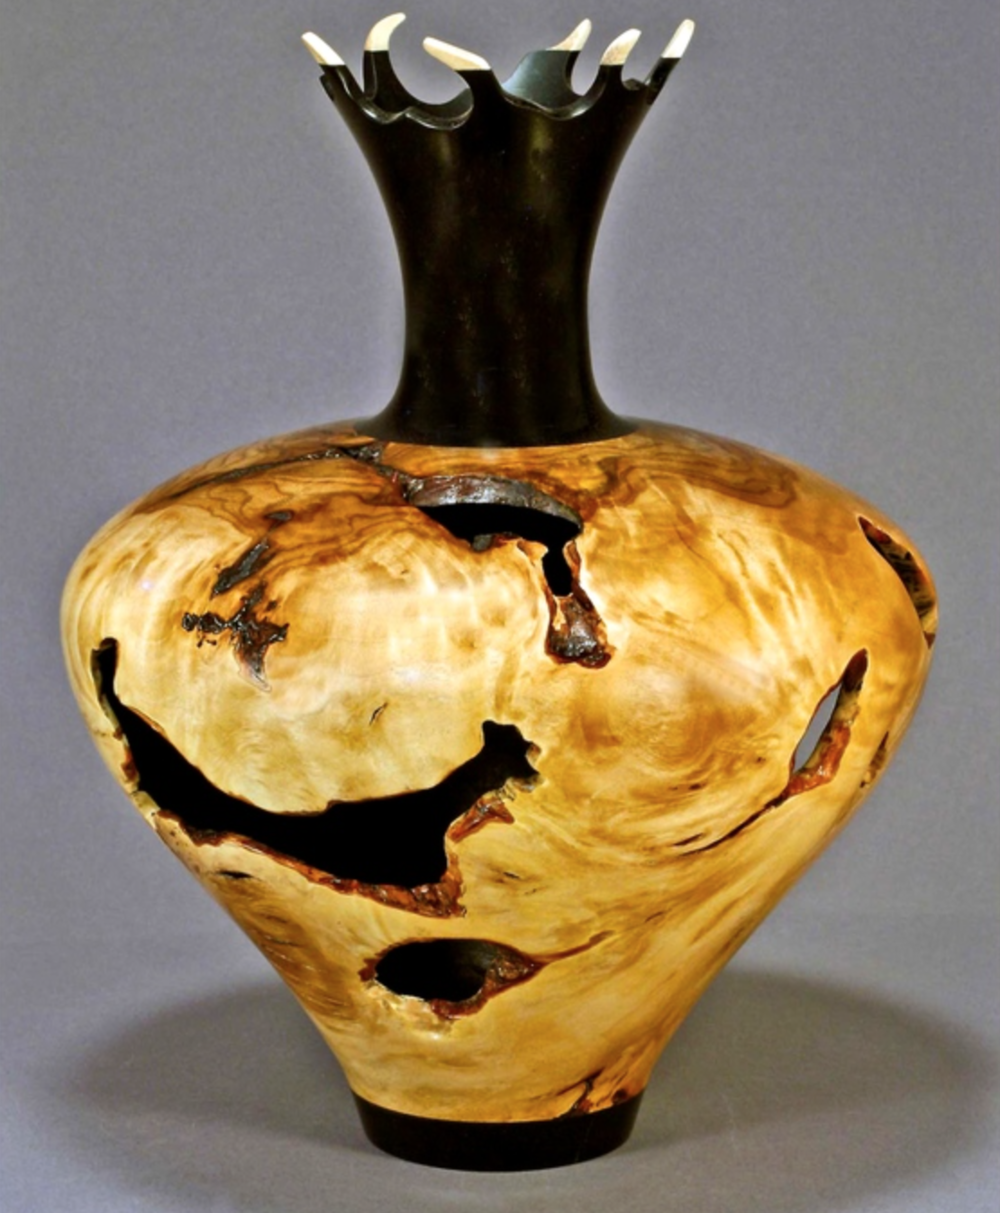 David Rec - Lathe turned bowls, vases, platters and lamps from reclaimed wood. Crushed stone, copper, inlays.